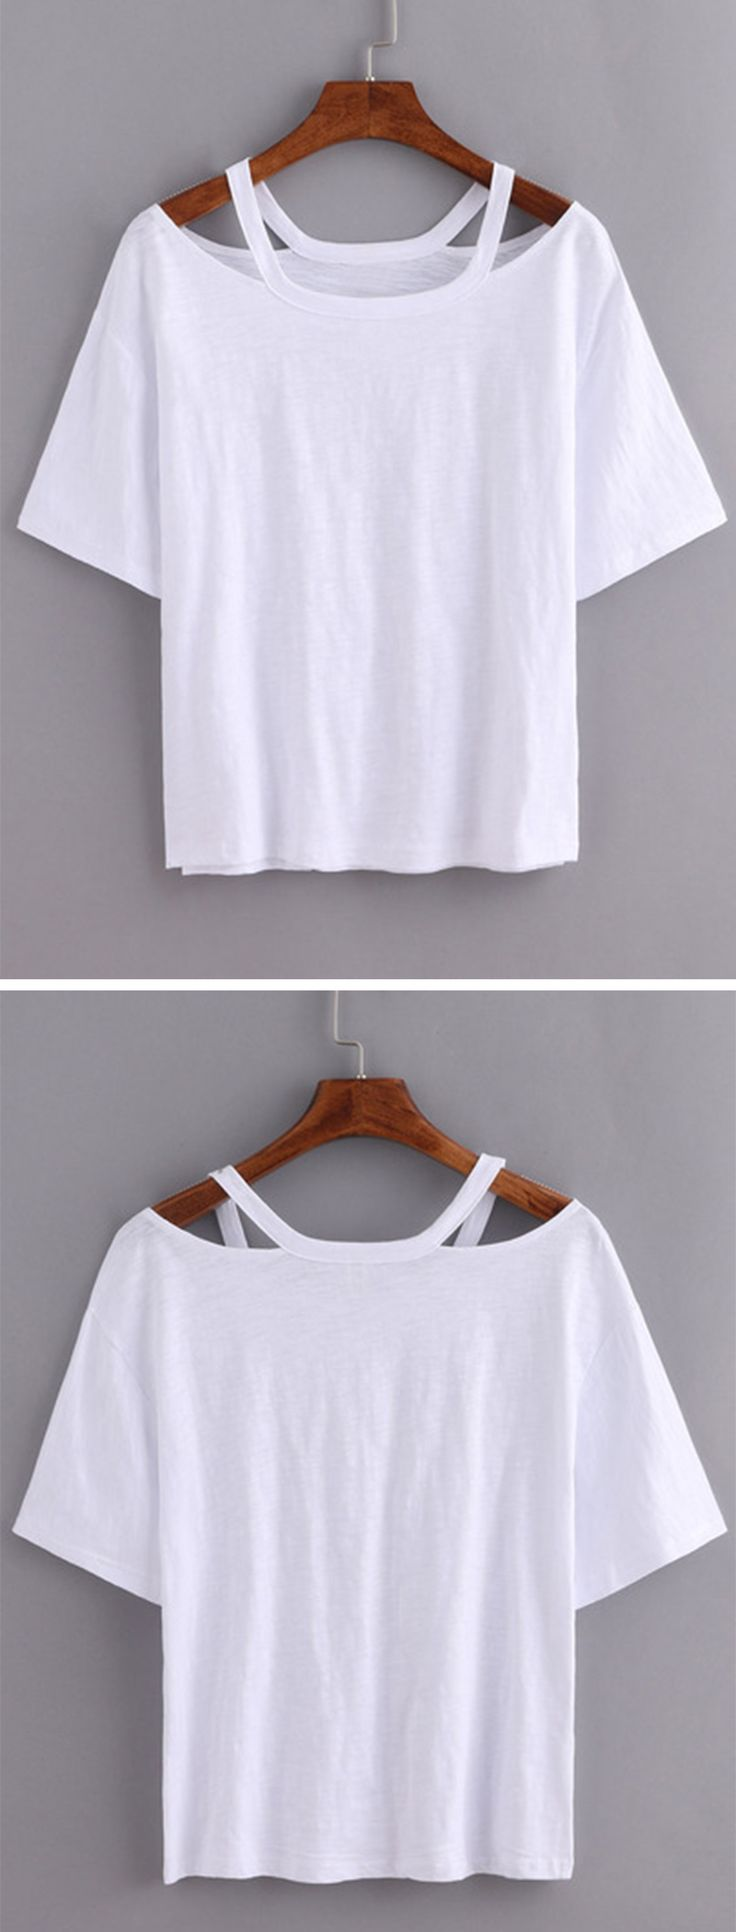 Plain white shirts cheapest t shirt jpg - Cutout Loose Fit White T Shirt